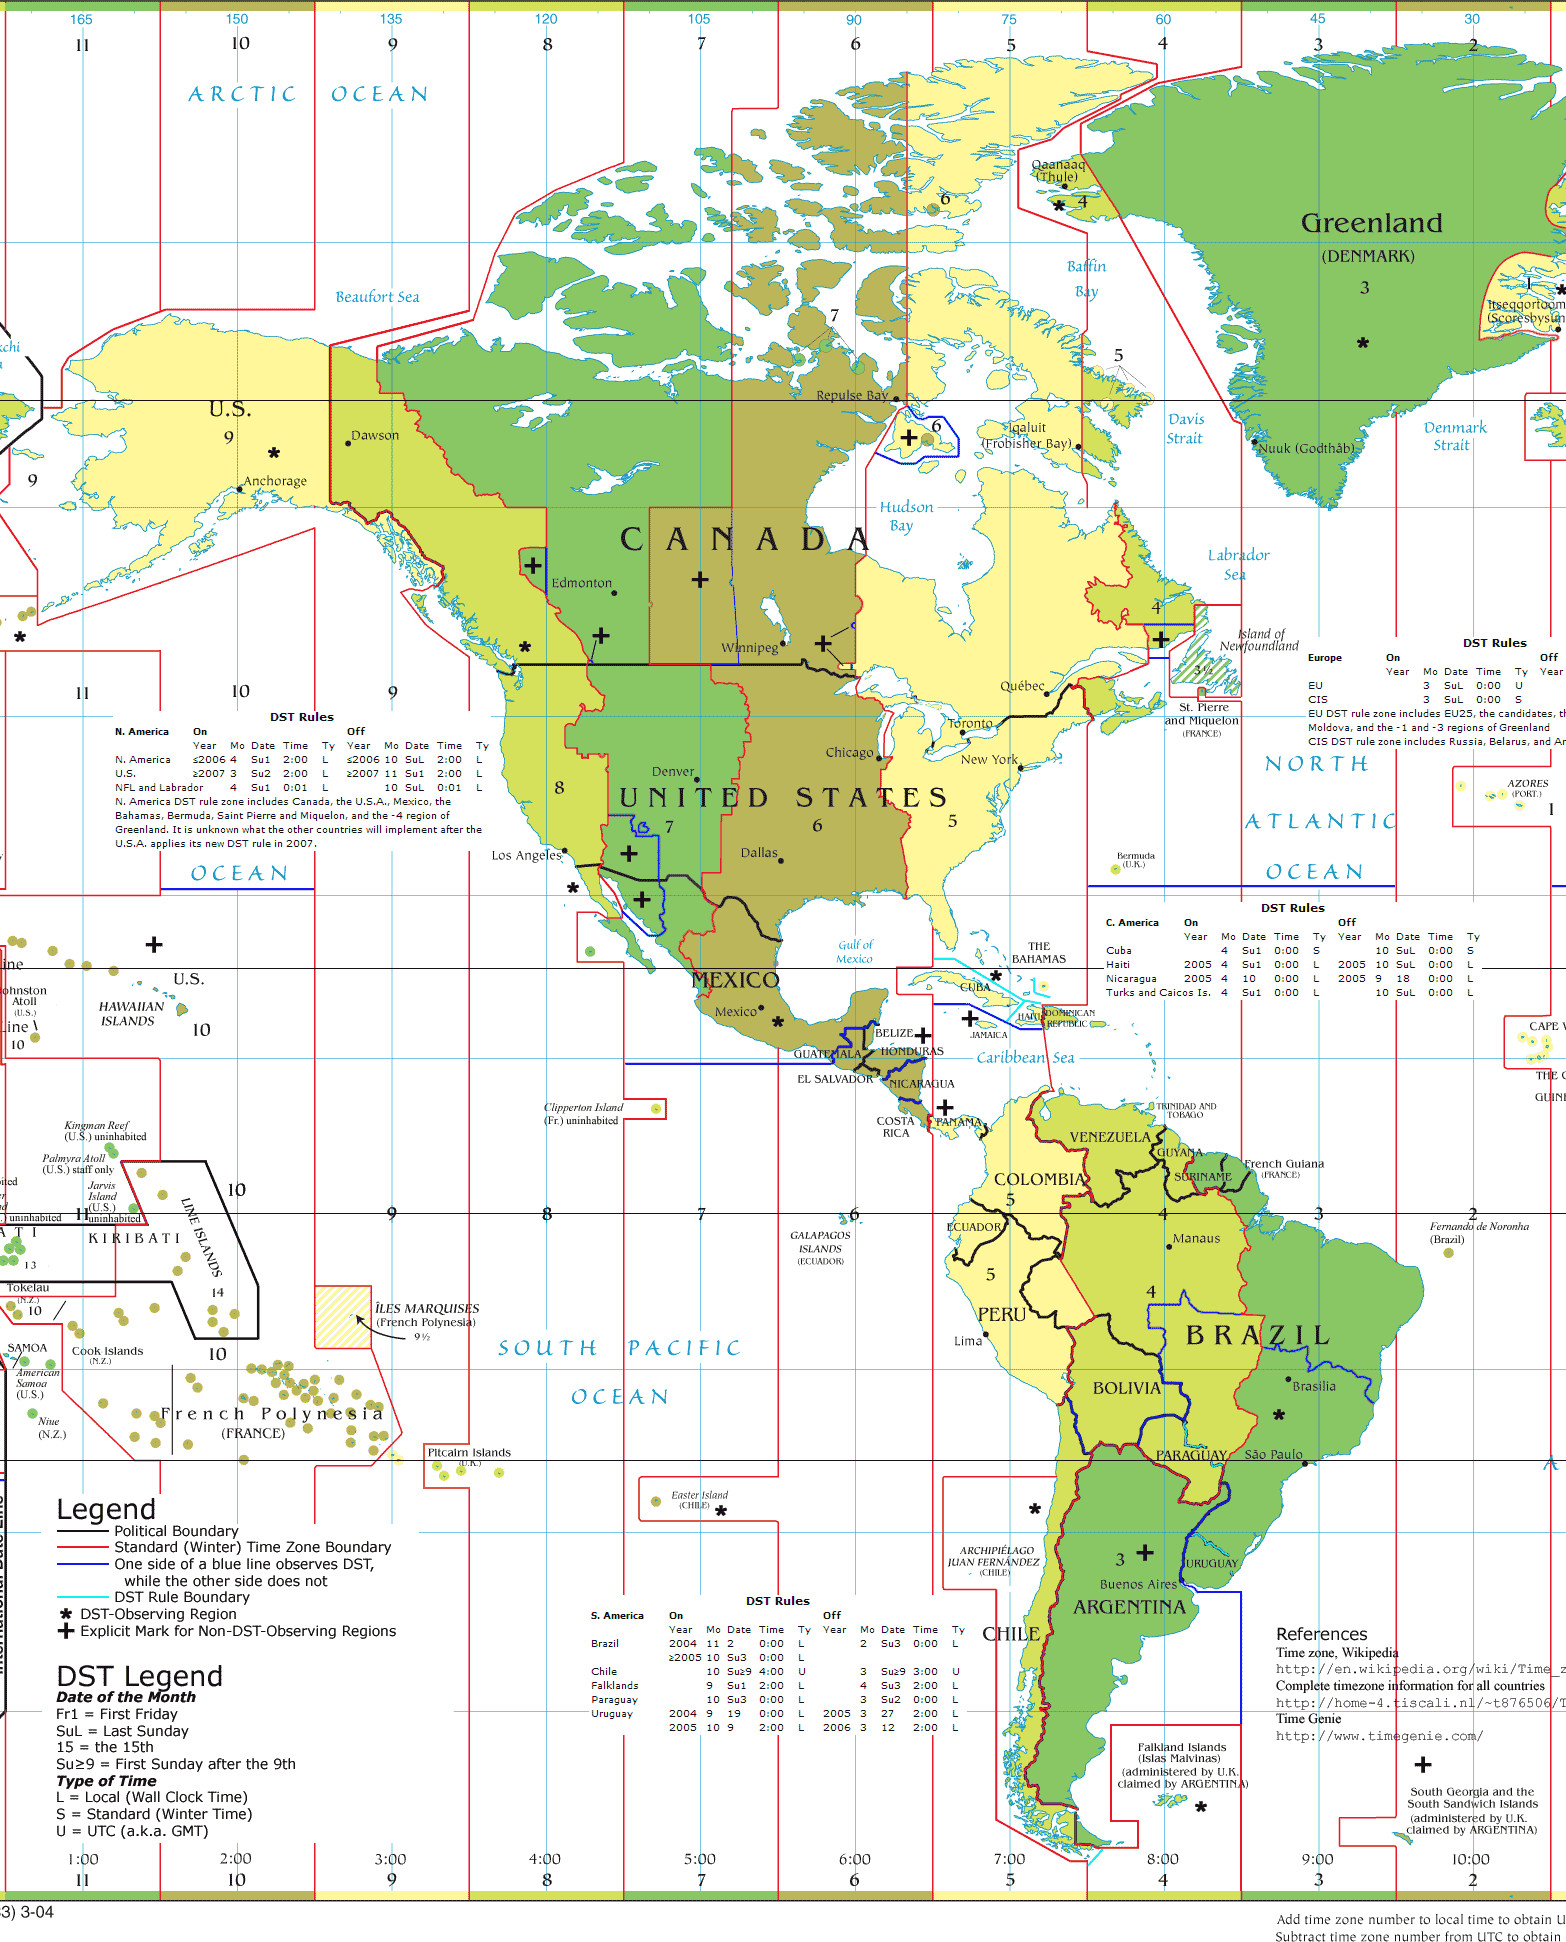 1566x1942 ... Wallpaper Sensational Design Ideas Usa Time Zone Map With Cities Maps  And Travel Information Download Free ...